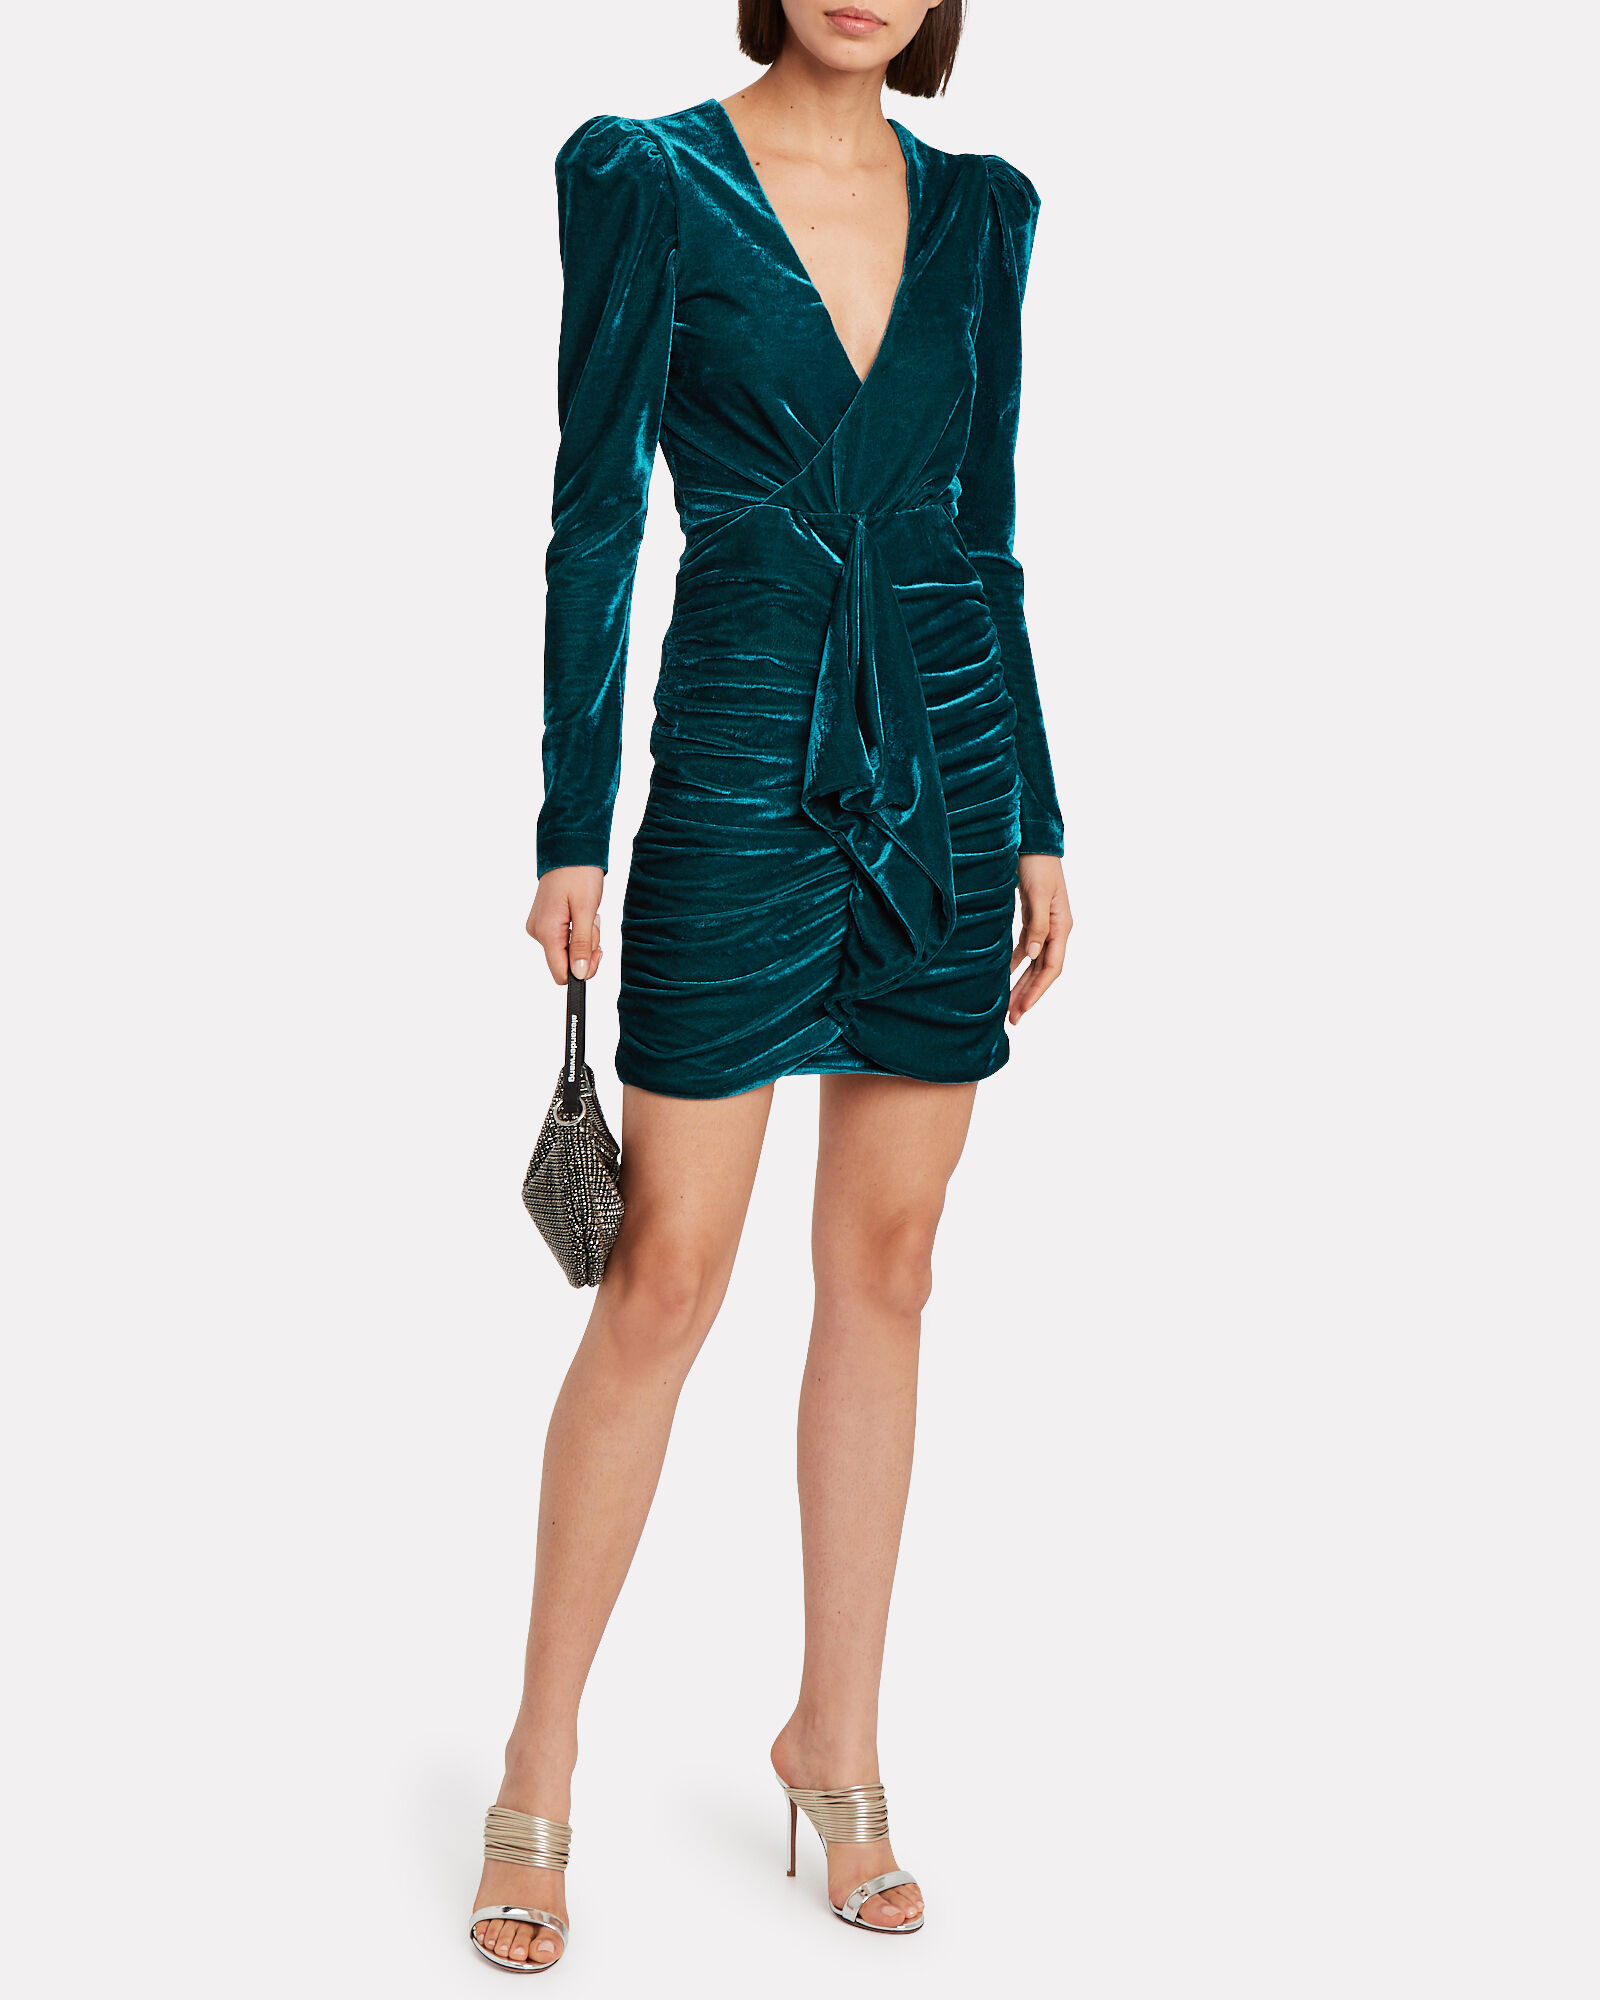 Ruched Velvet Mini Dress, TURQUOISE, hi-res